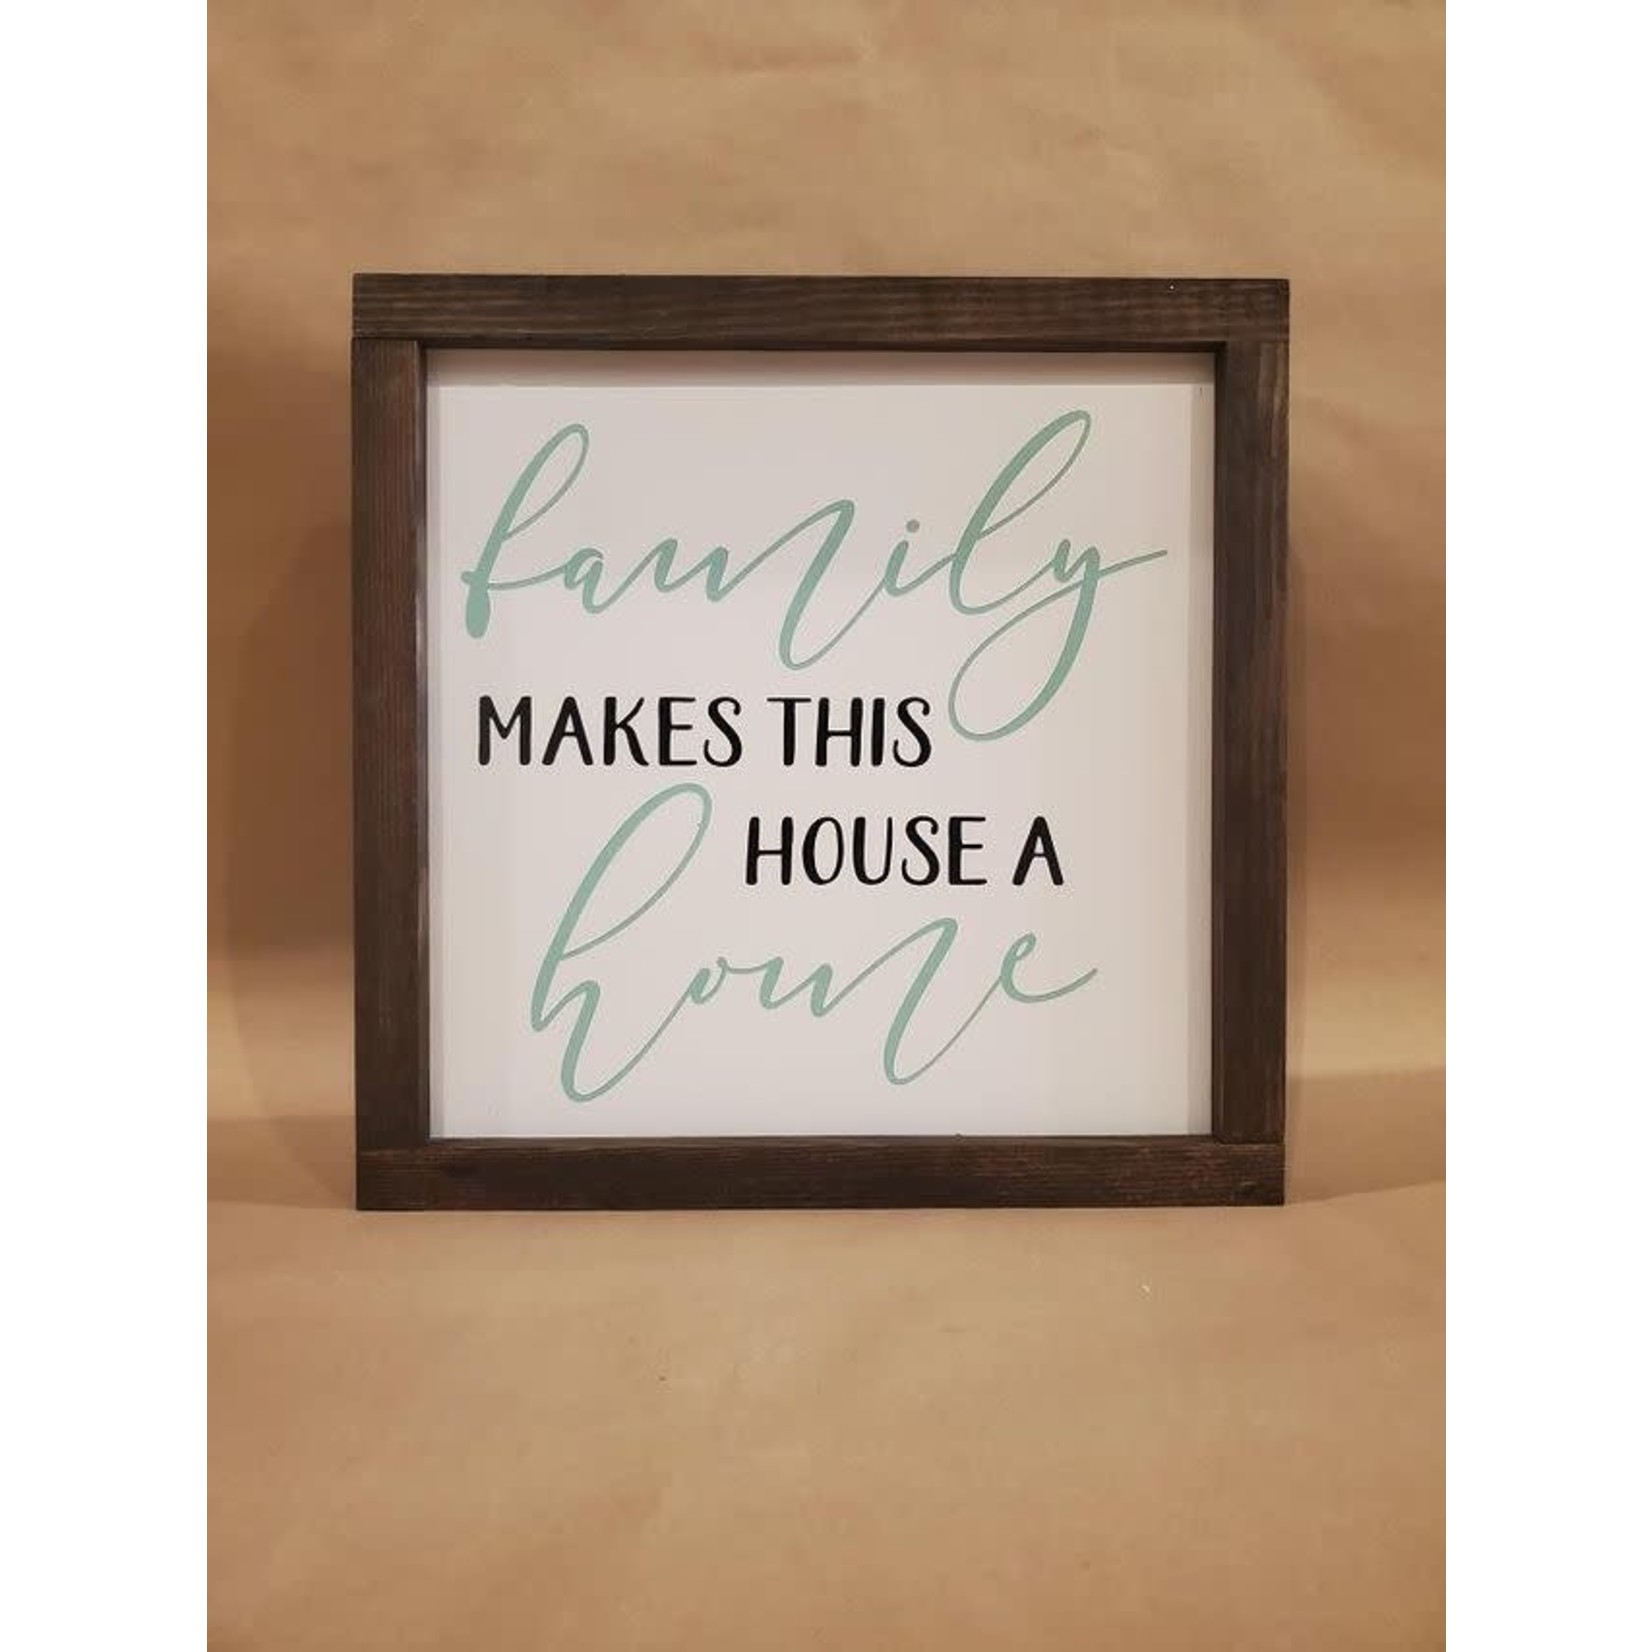 Favourite Things wood Family makes this house a home 10x10 framed sign